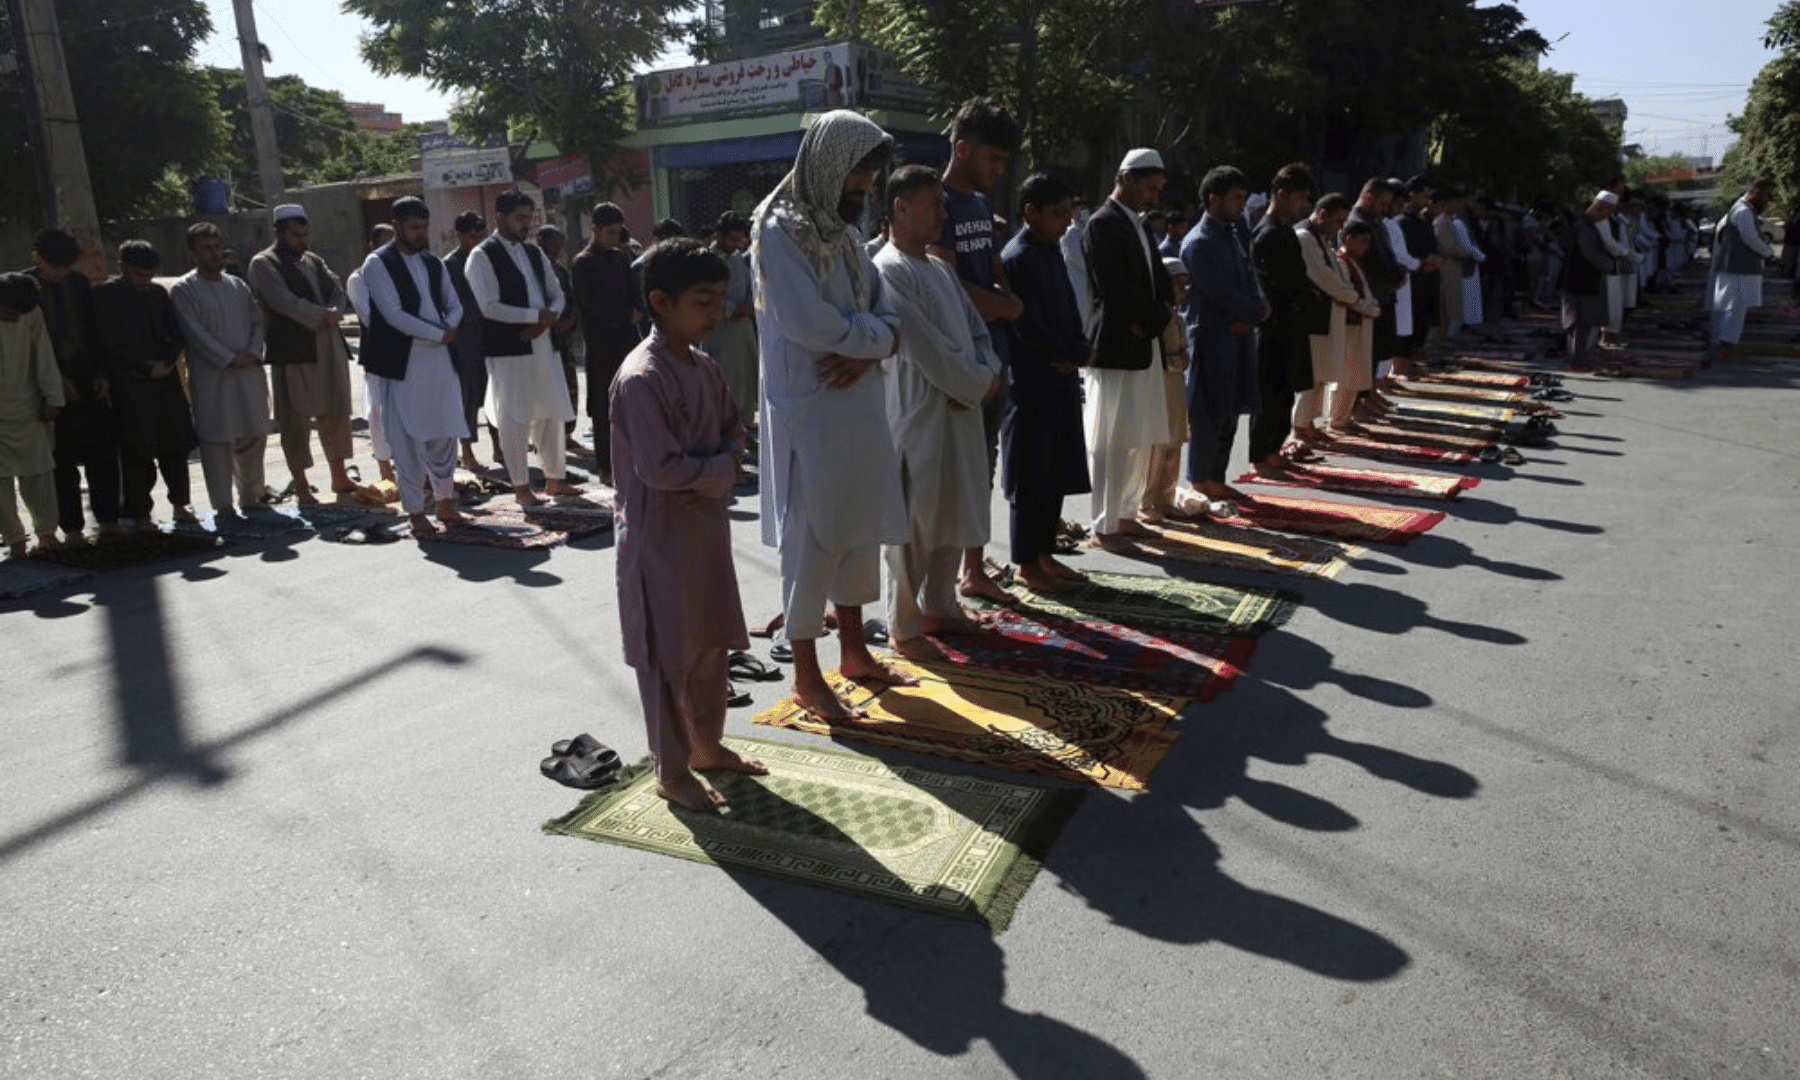 Men attend the Eidul Fitr prayers outside a mosque in Kabul, Afghanistan. The country has seen a spike in violence in recent weeks but a three-day ceasefire has been announced for Eid. — AP